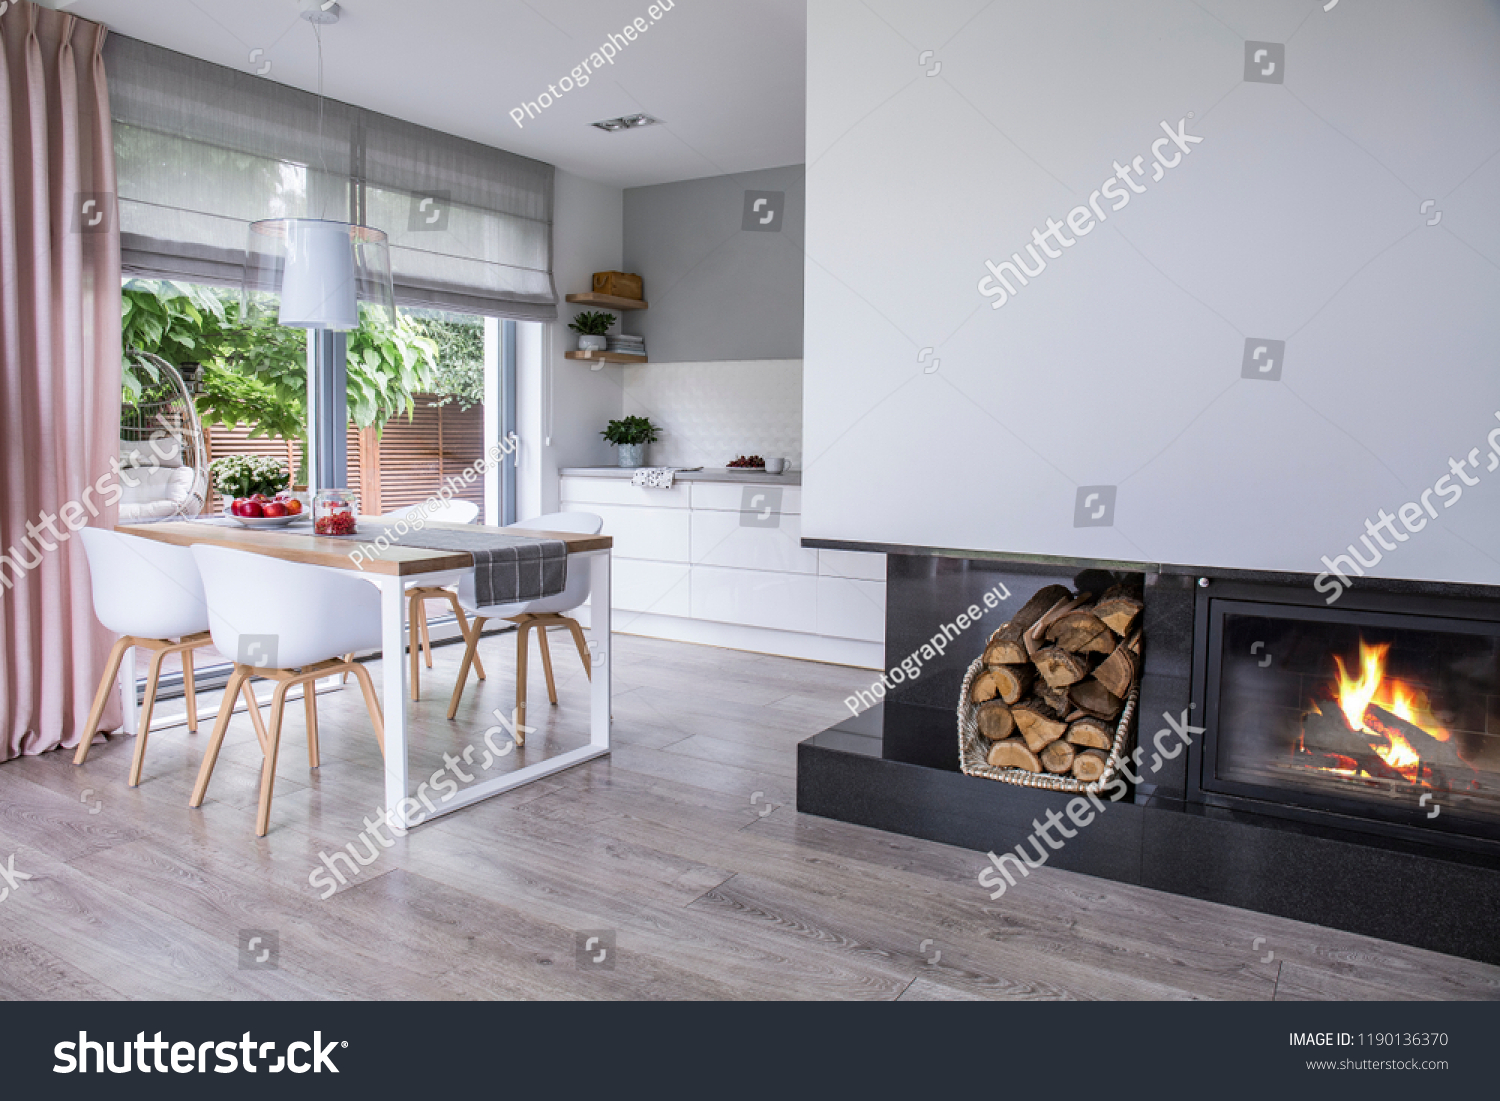 Real Photo Of A Fireplace In Modern Kitchen And Dining Room Interior Empty Wall